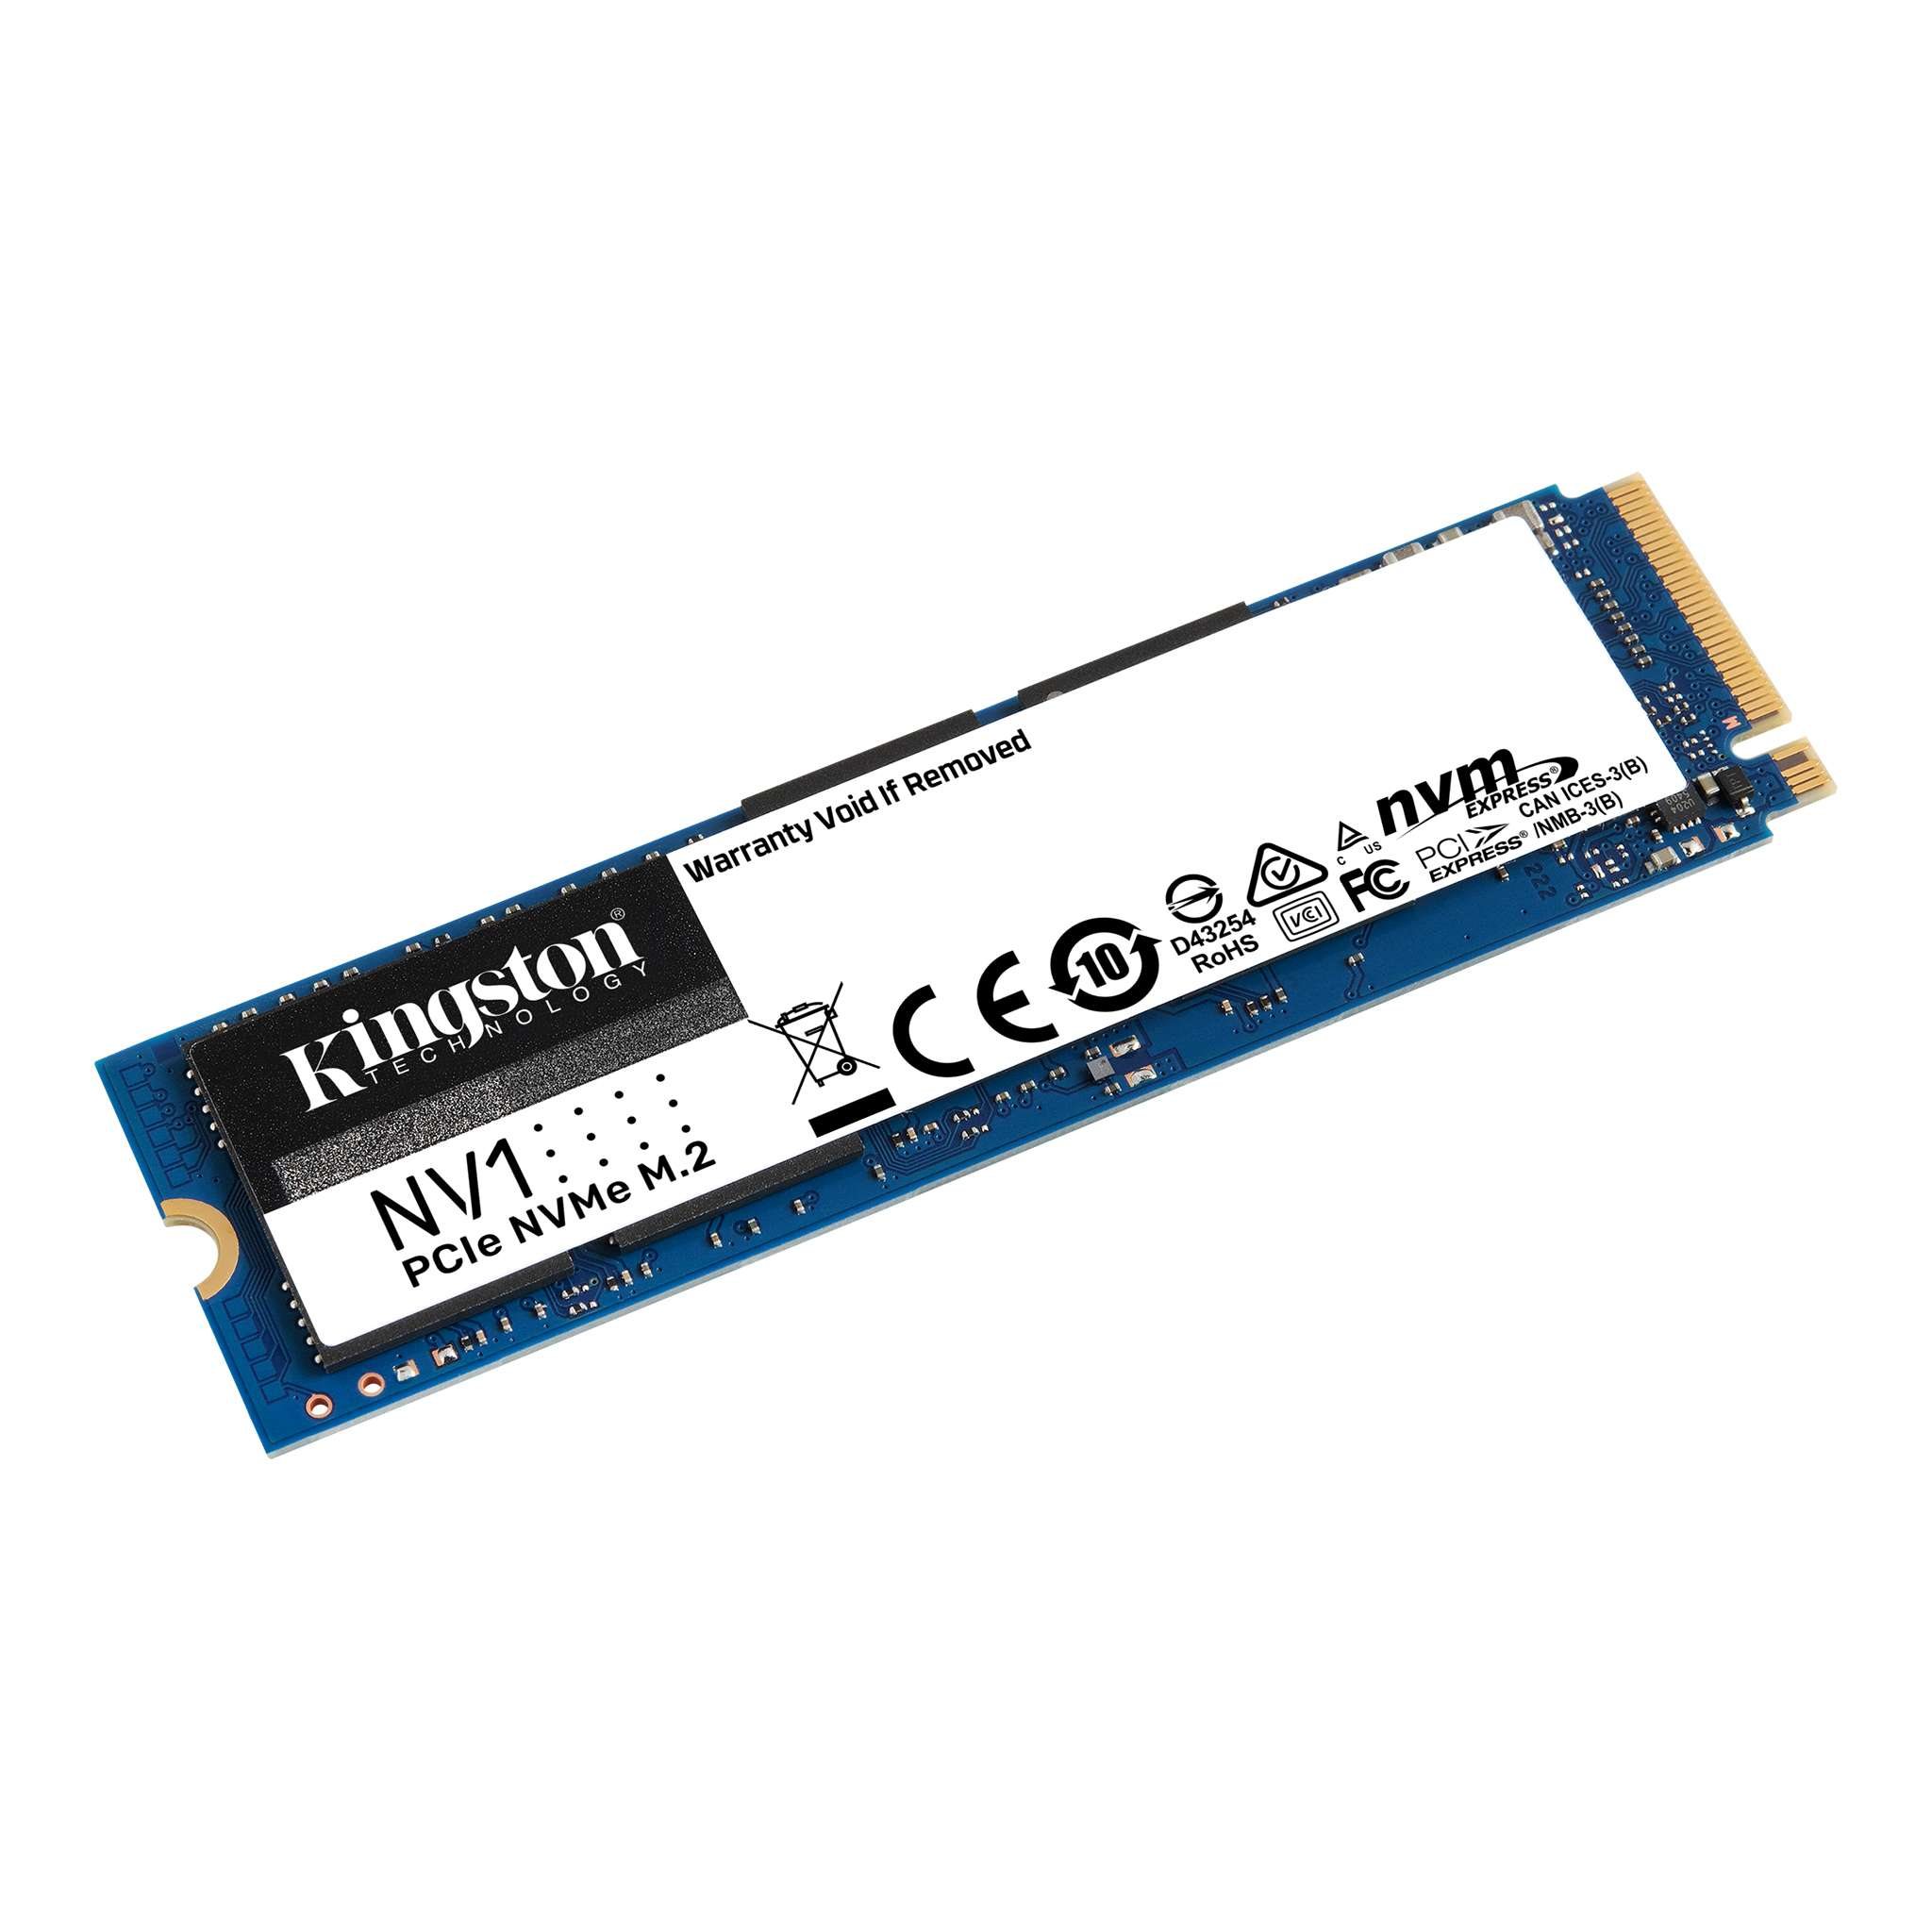 Kingston 1 TB SSD - intern - M.2 2280 - PCI Express 3.0 x4 (NVMe)